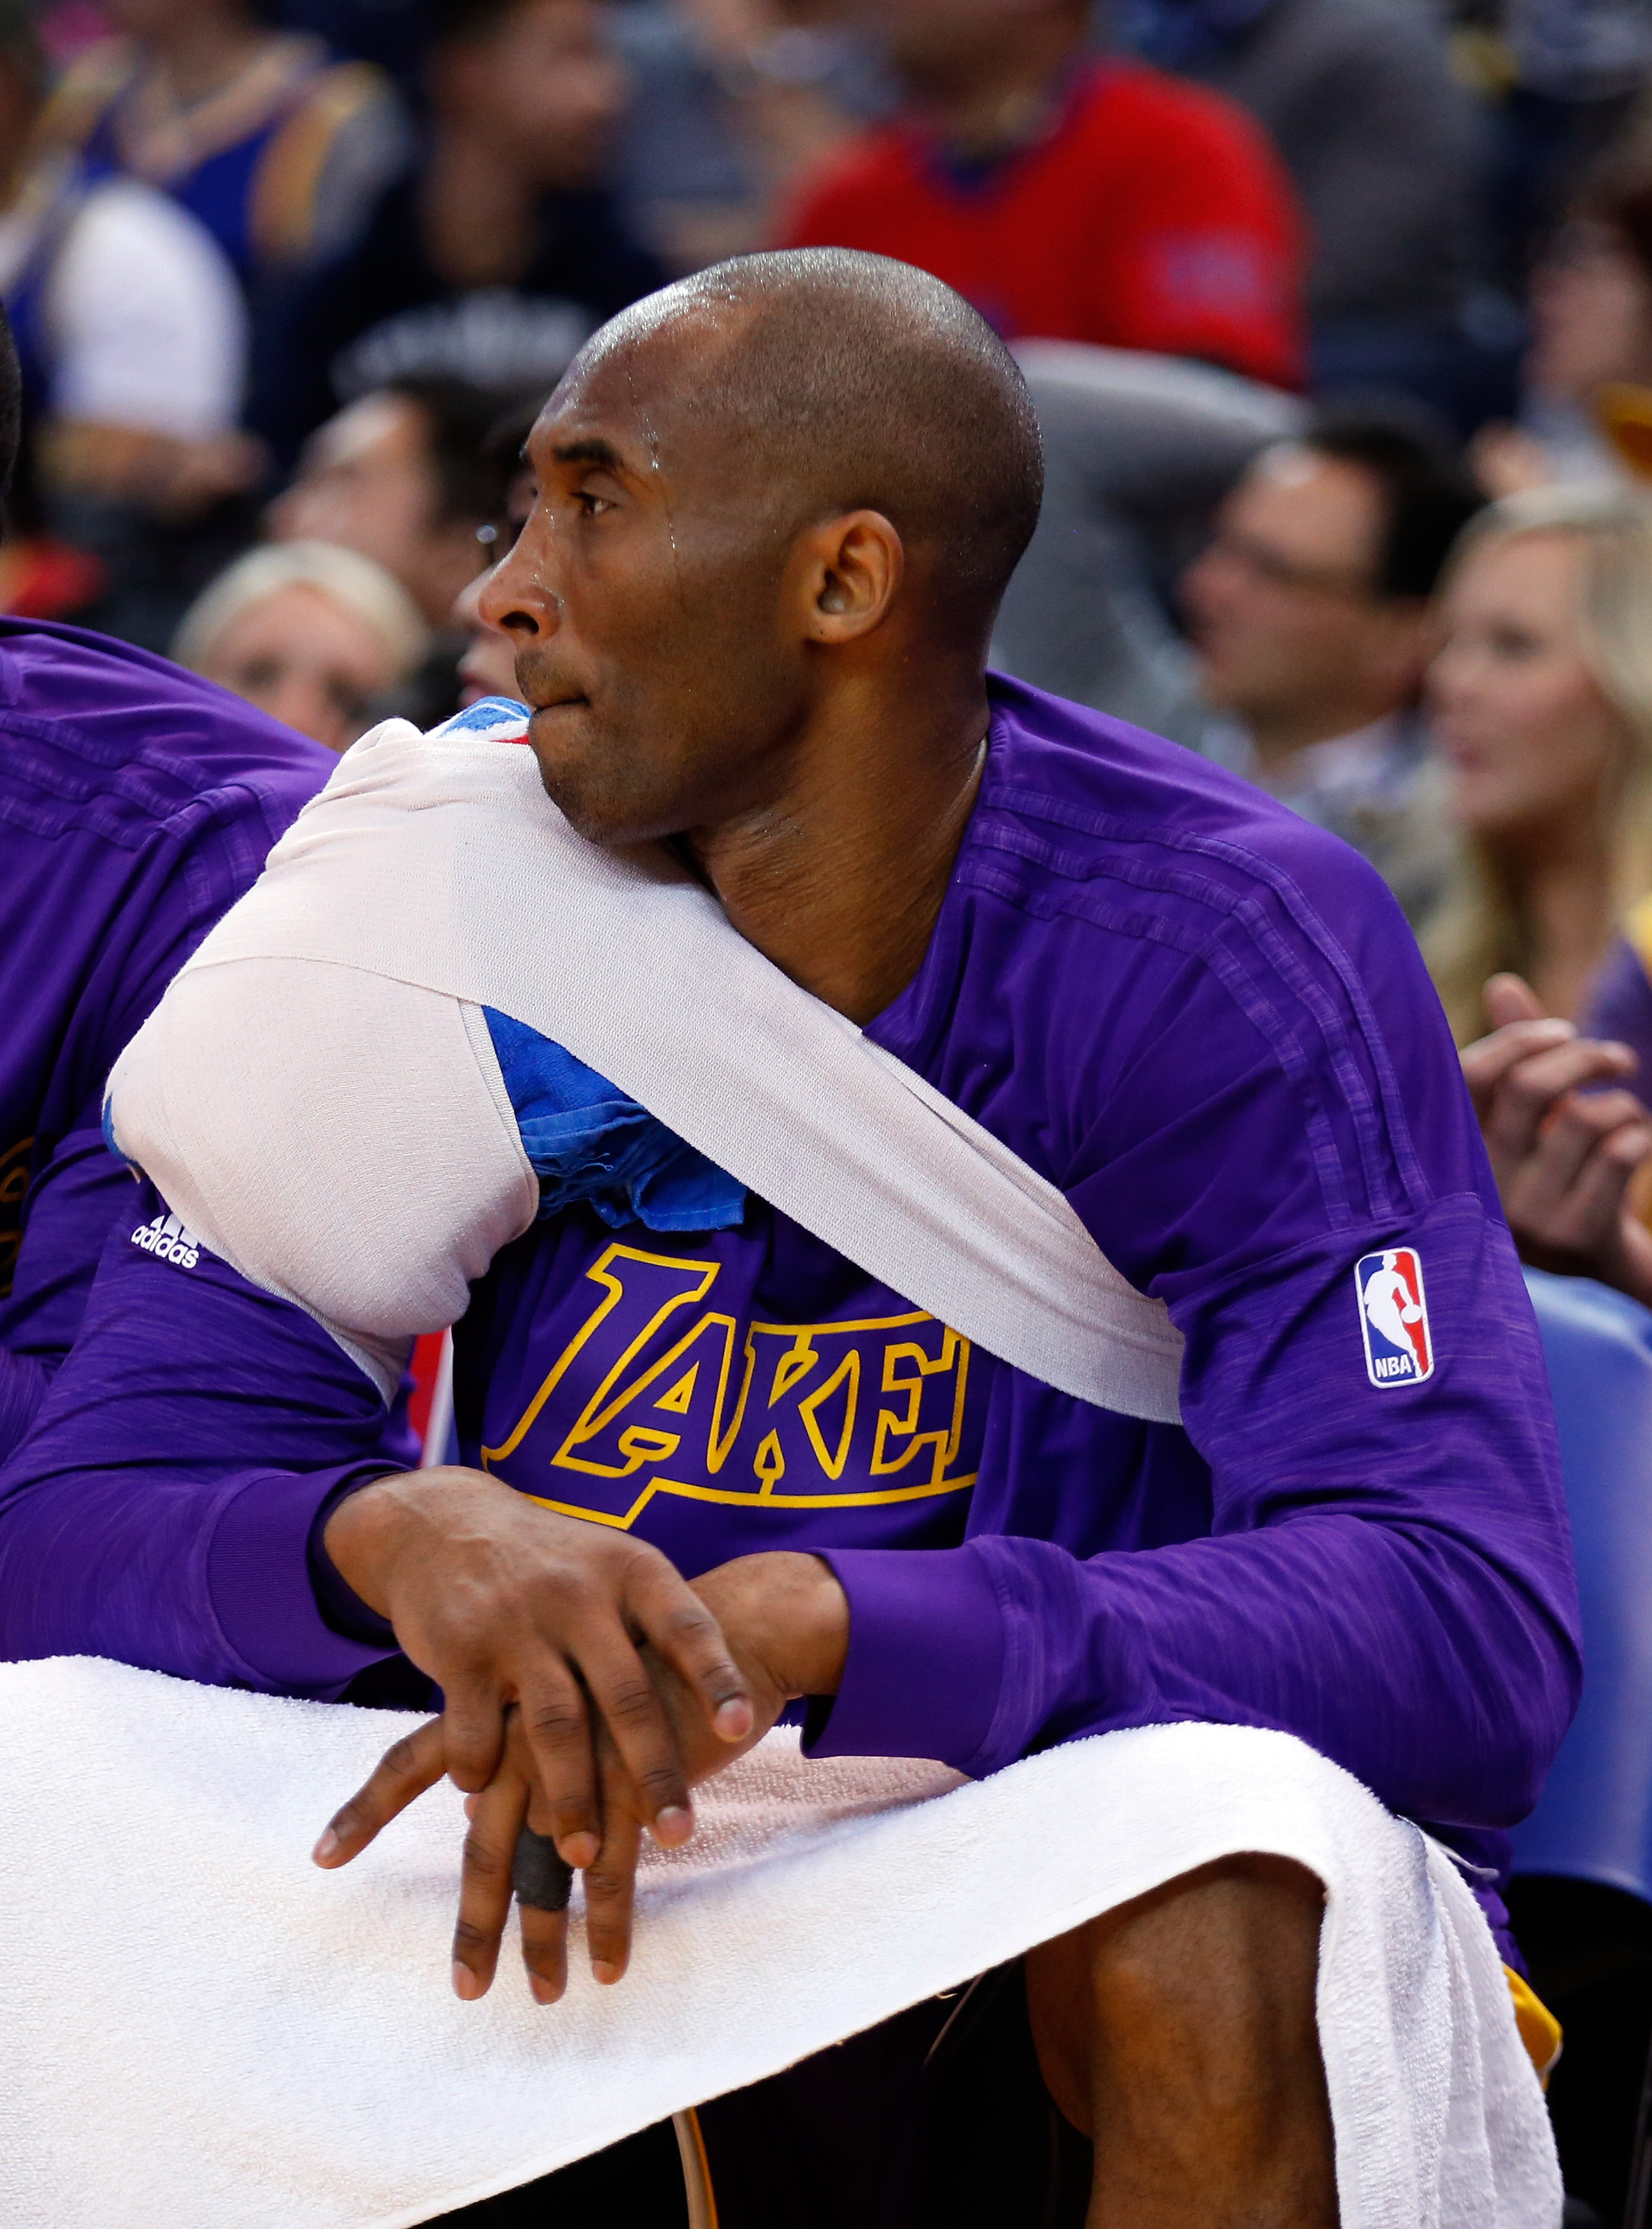 OAKLAND, CA - JANUARY 14:  Kobe Bryant #24 of the Los Angeles Lakers sits on the bench during their game against the Golden State Warriors at ORACLE Arena on January 14, 2016 in Oakland, California. (Photo by Ezra Shaw/Getty Images)